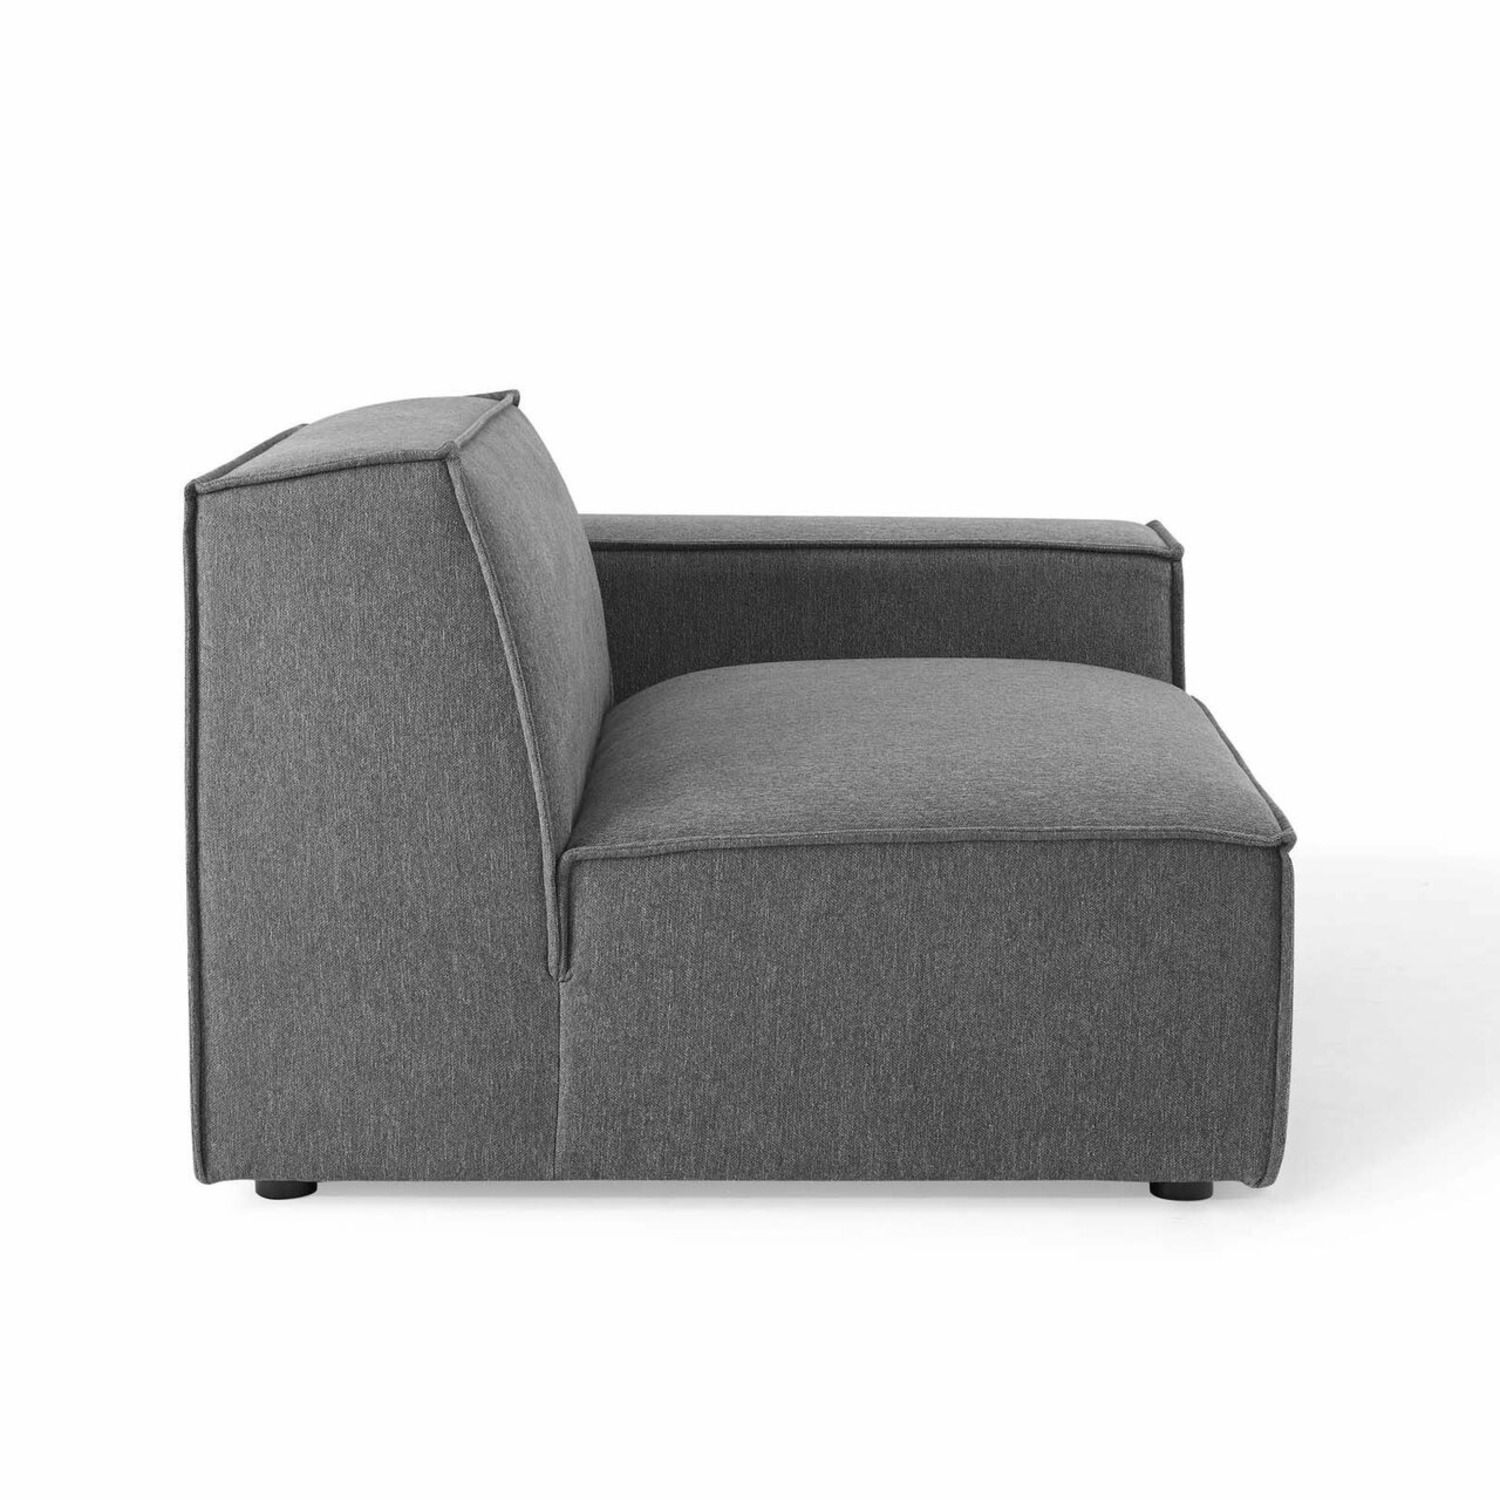 6Piece Sectional Sofa In Charcoal Polyester Fabric - image-3